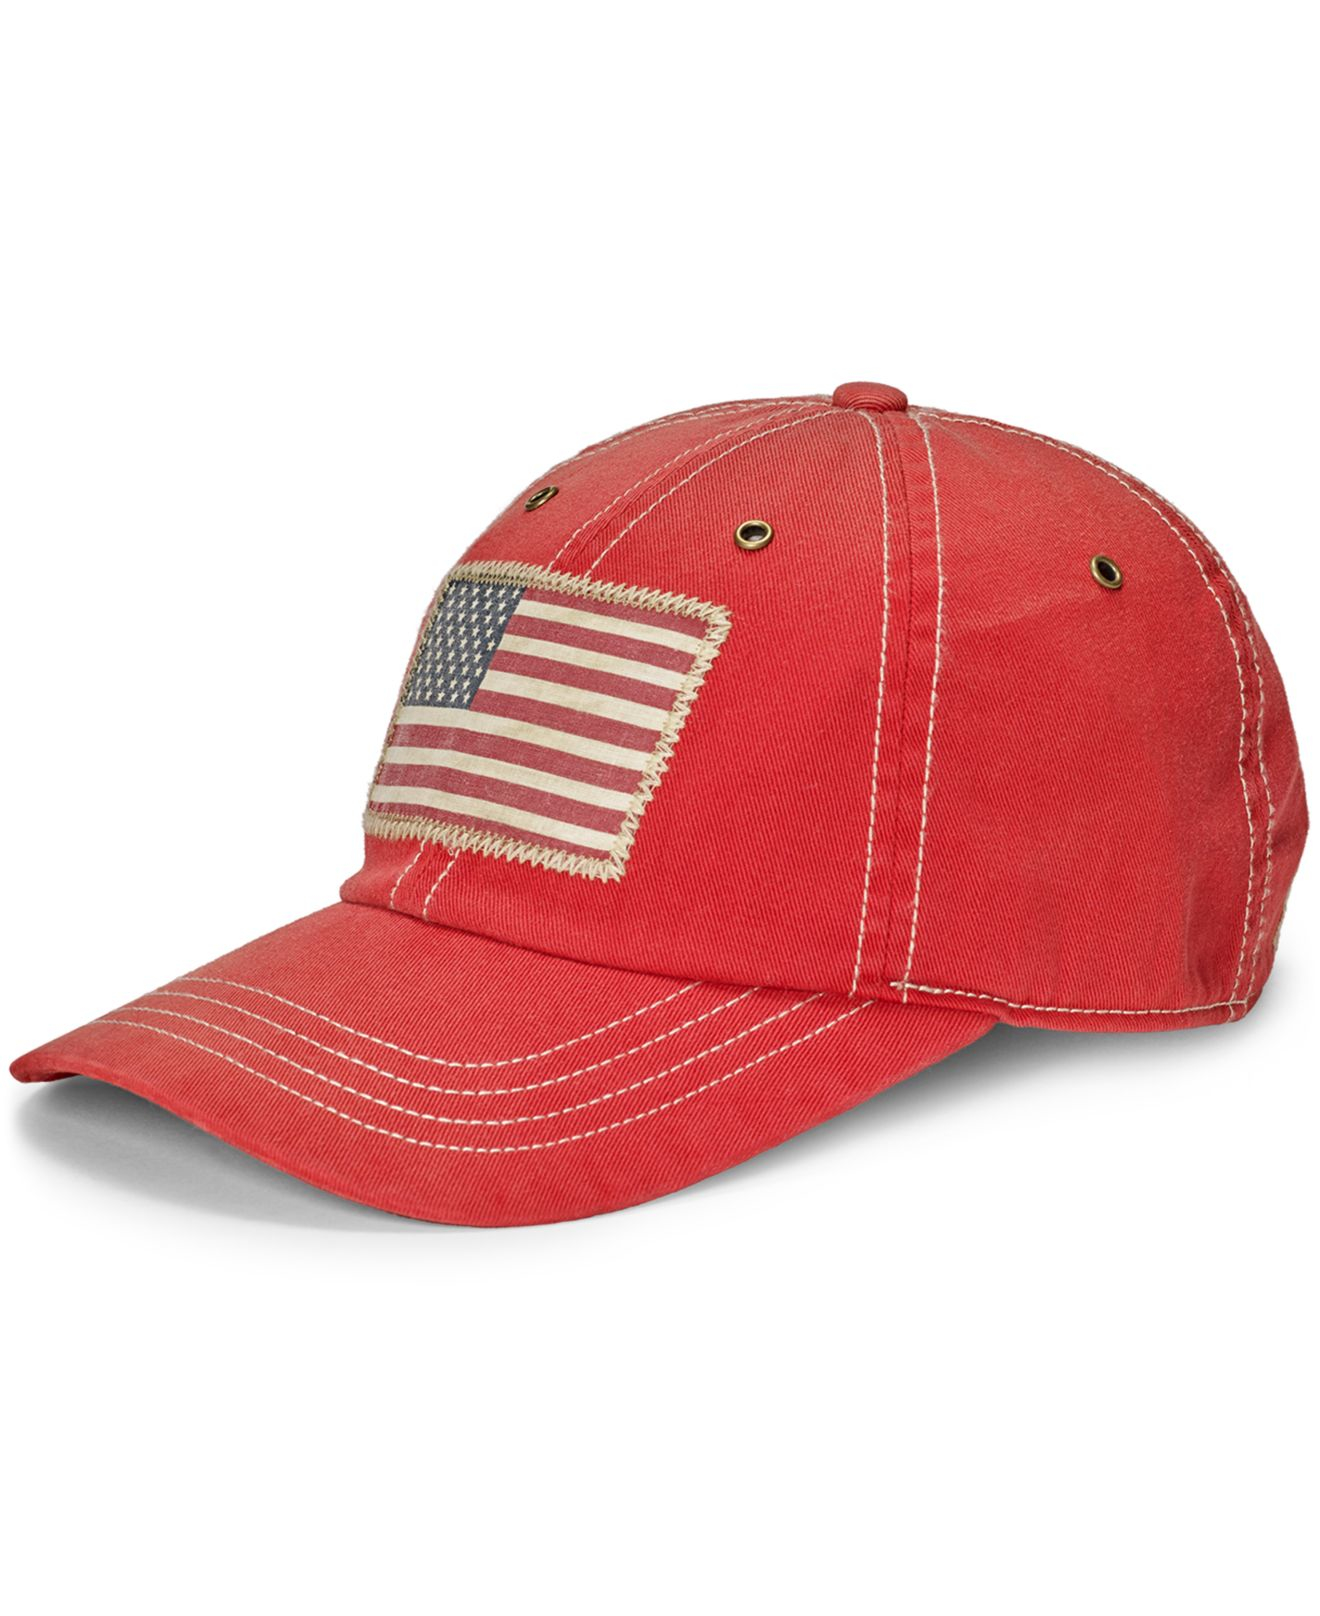 Lyst - Polo Ralph Lauren Men s Chino Flag Graphic Cap in Red for Men da9a7c43555